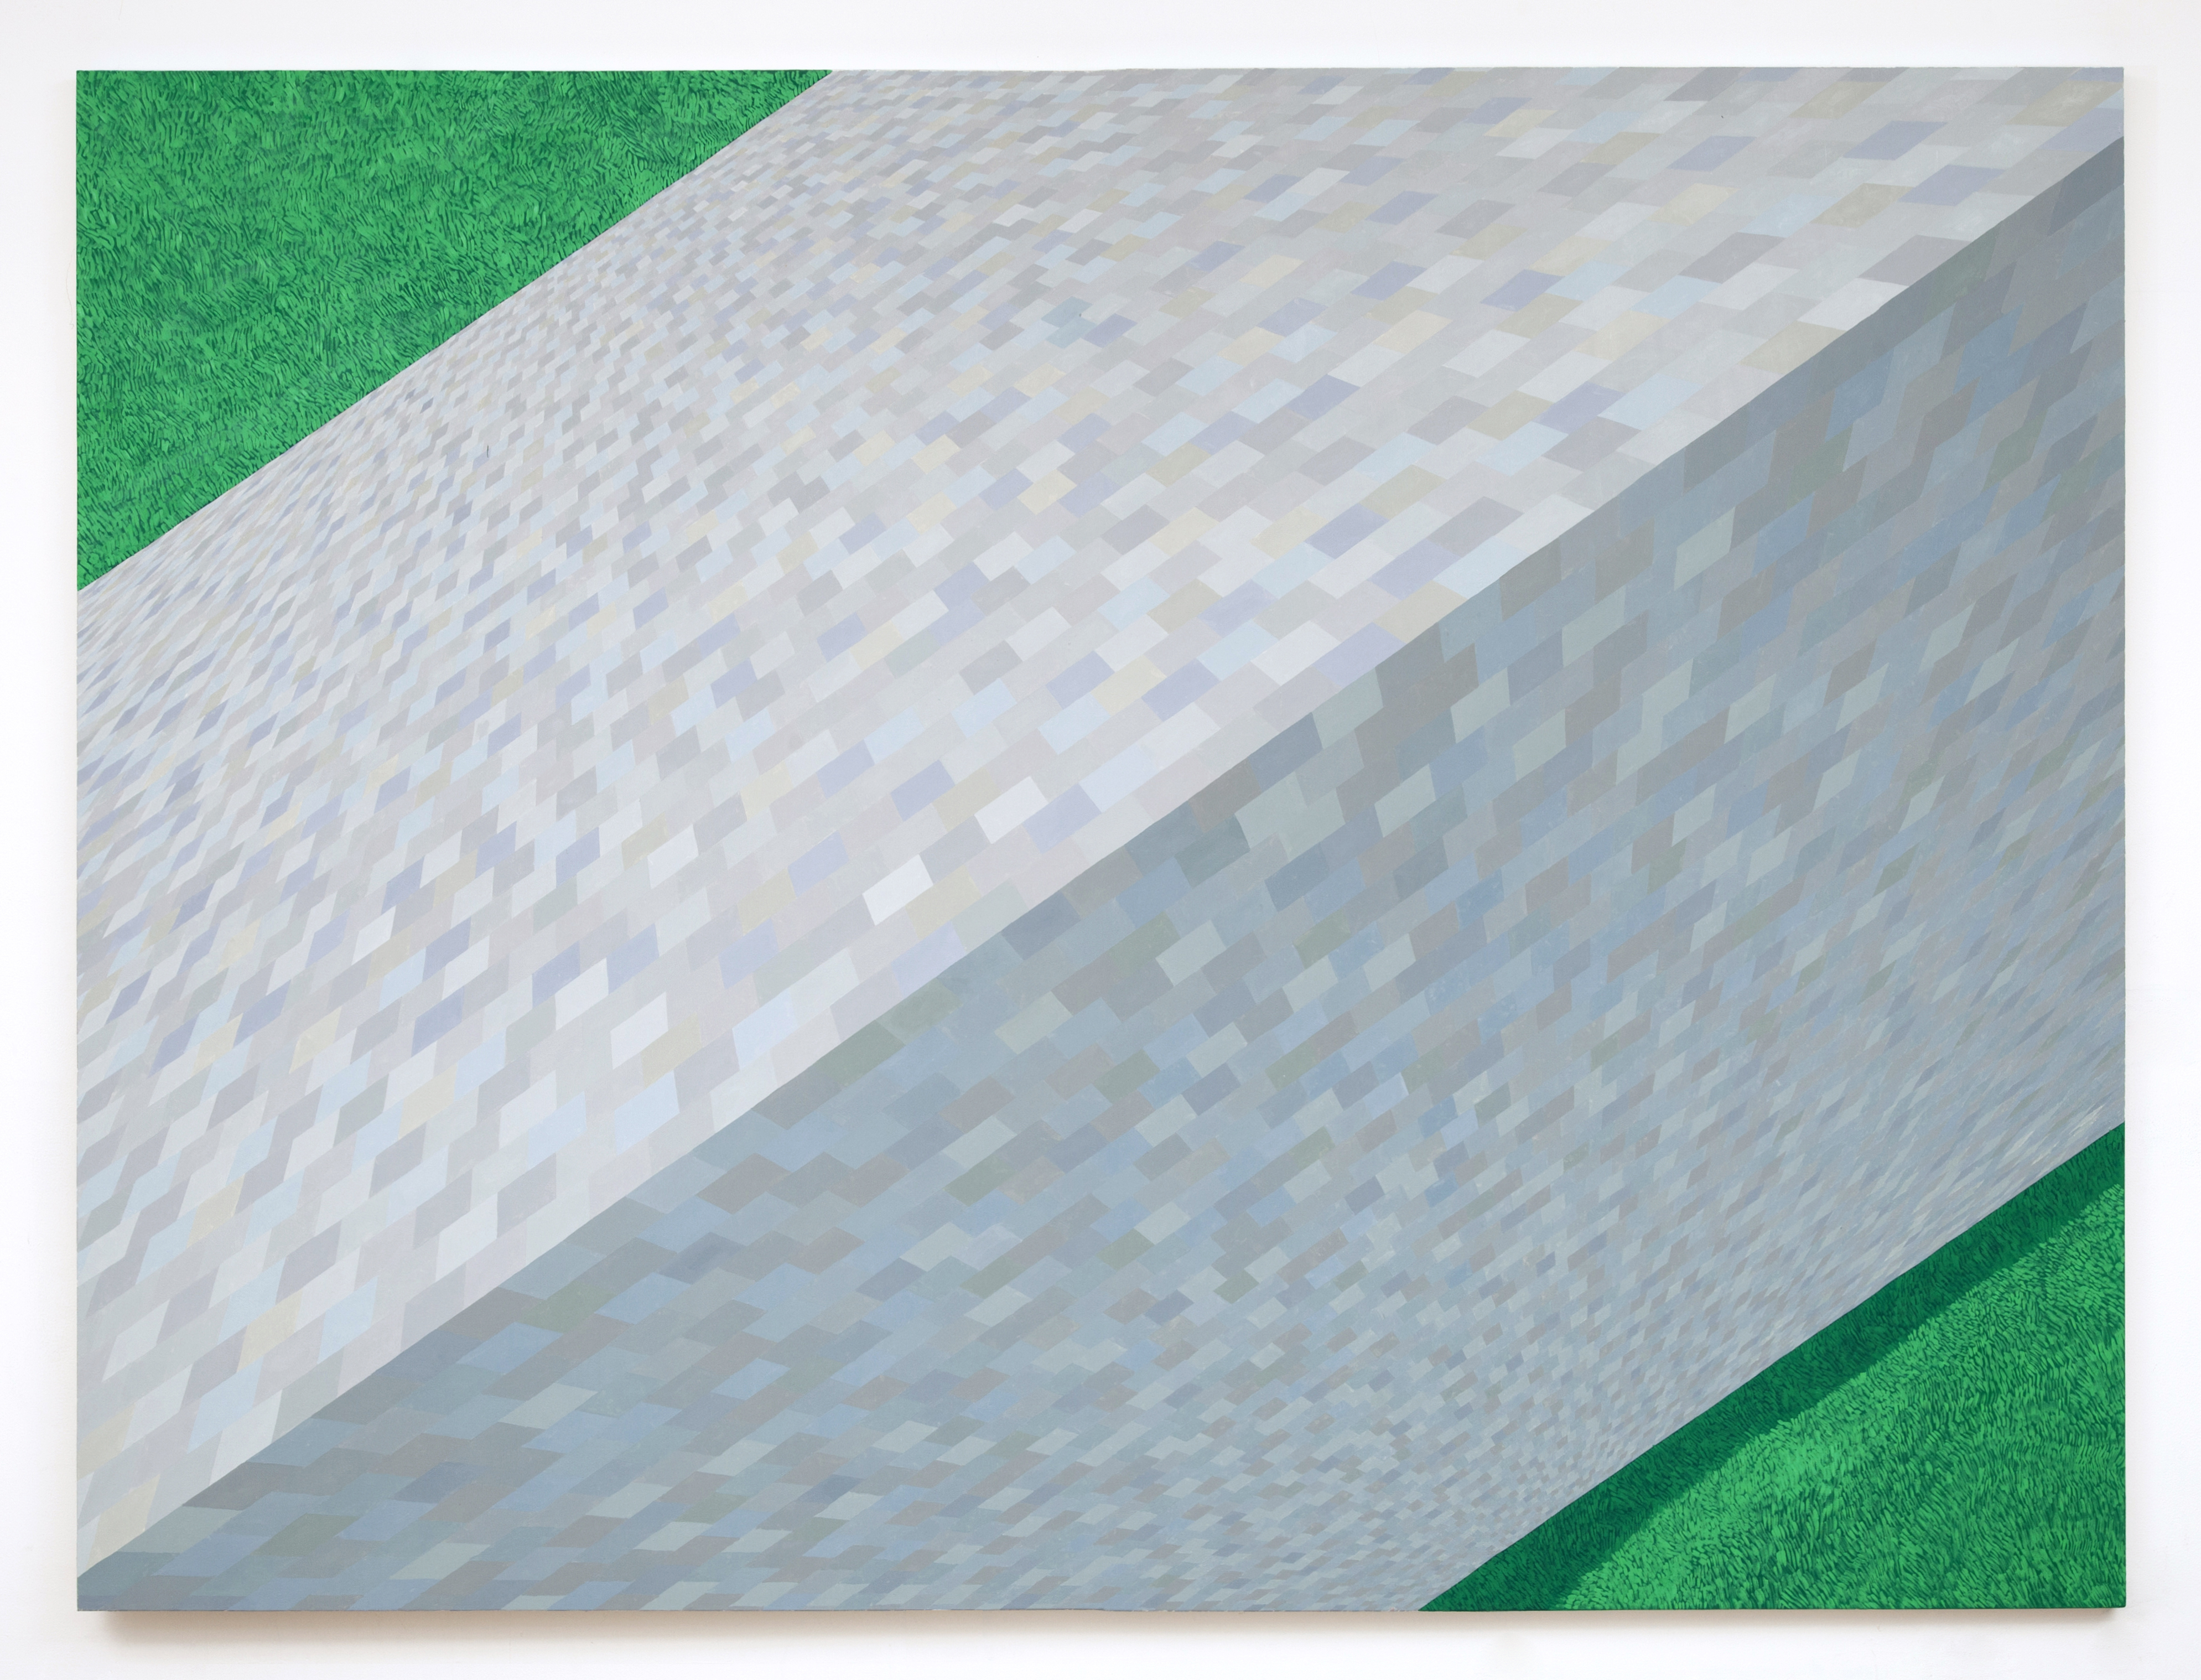 Corydon Cowansage, Roof #12, 2012, 76 x 108 inches, oil on canvas